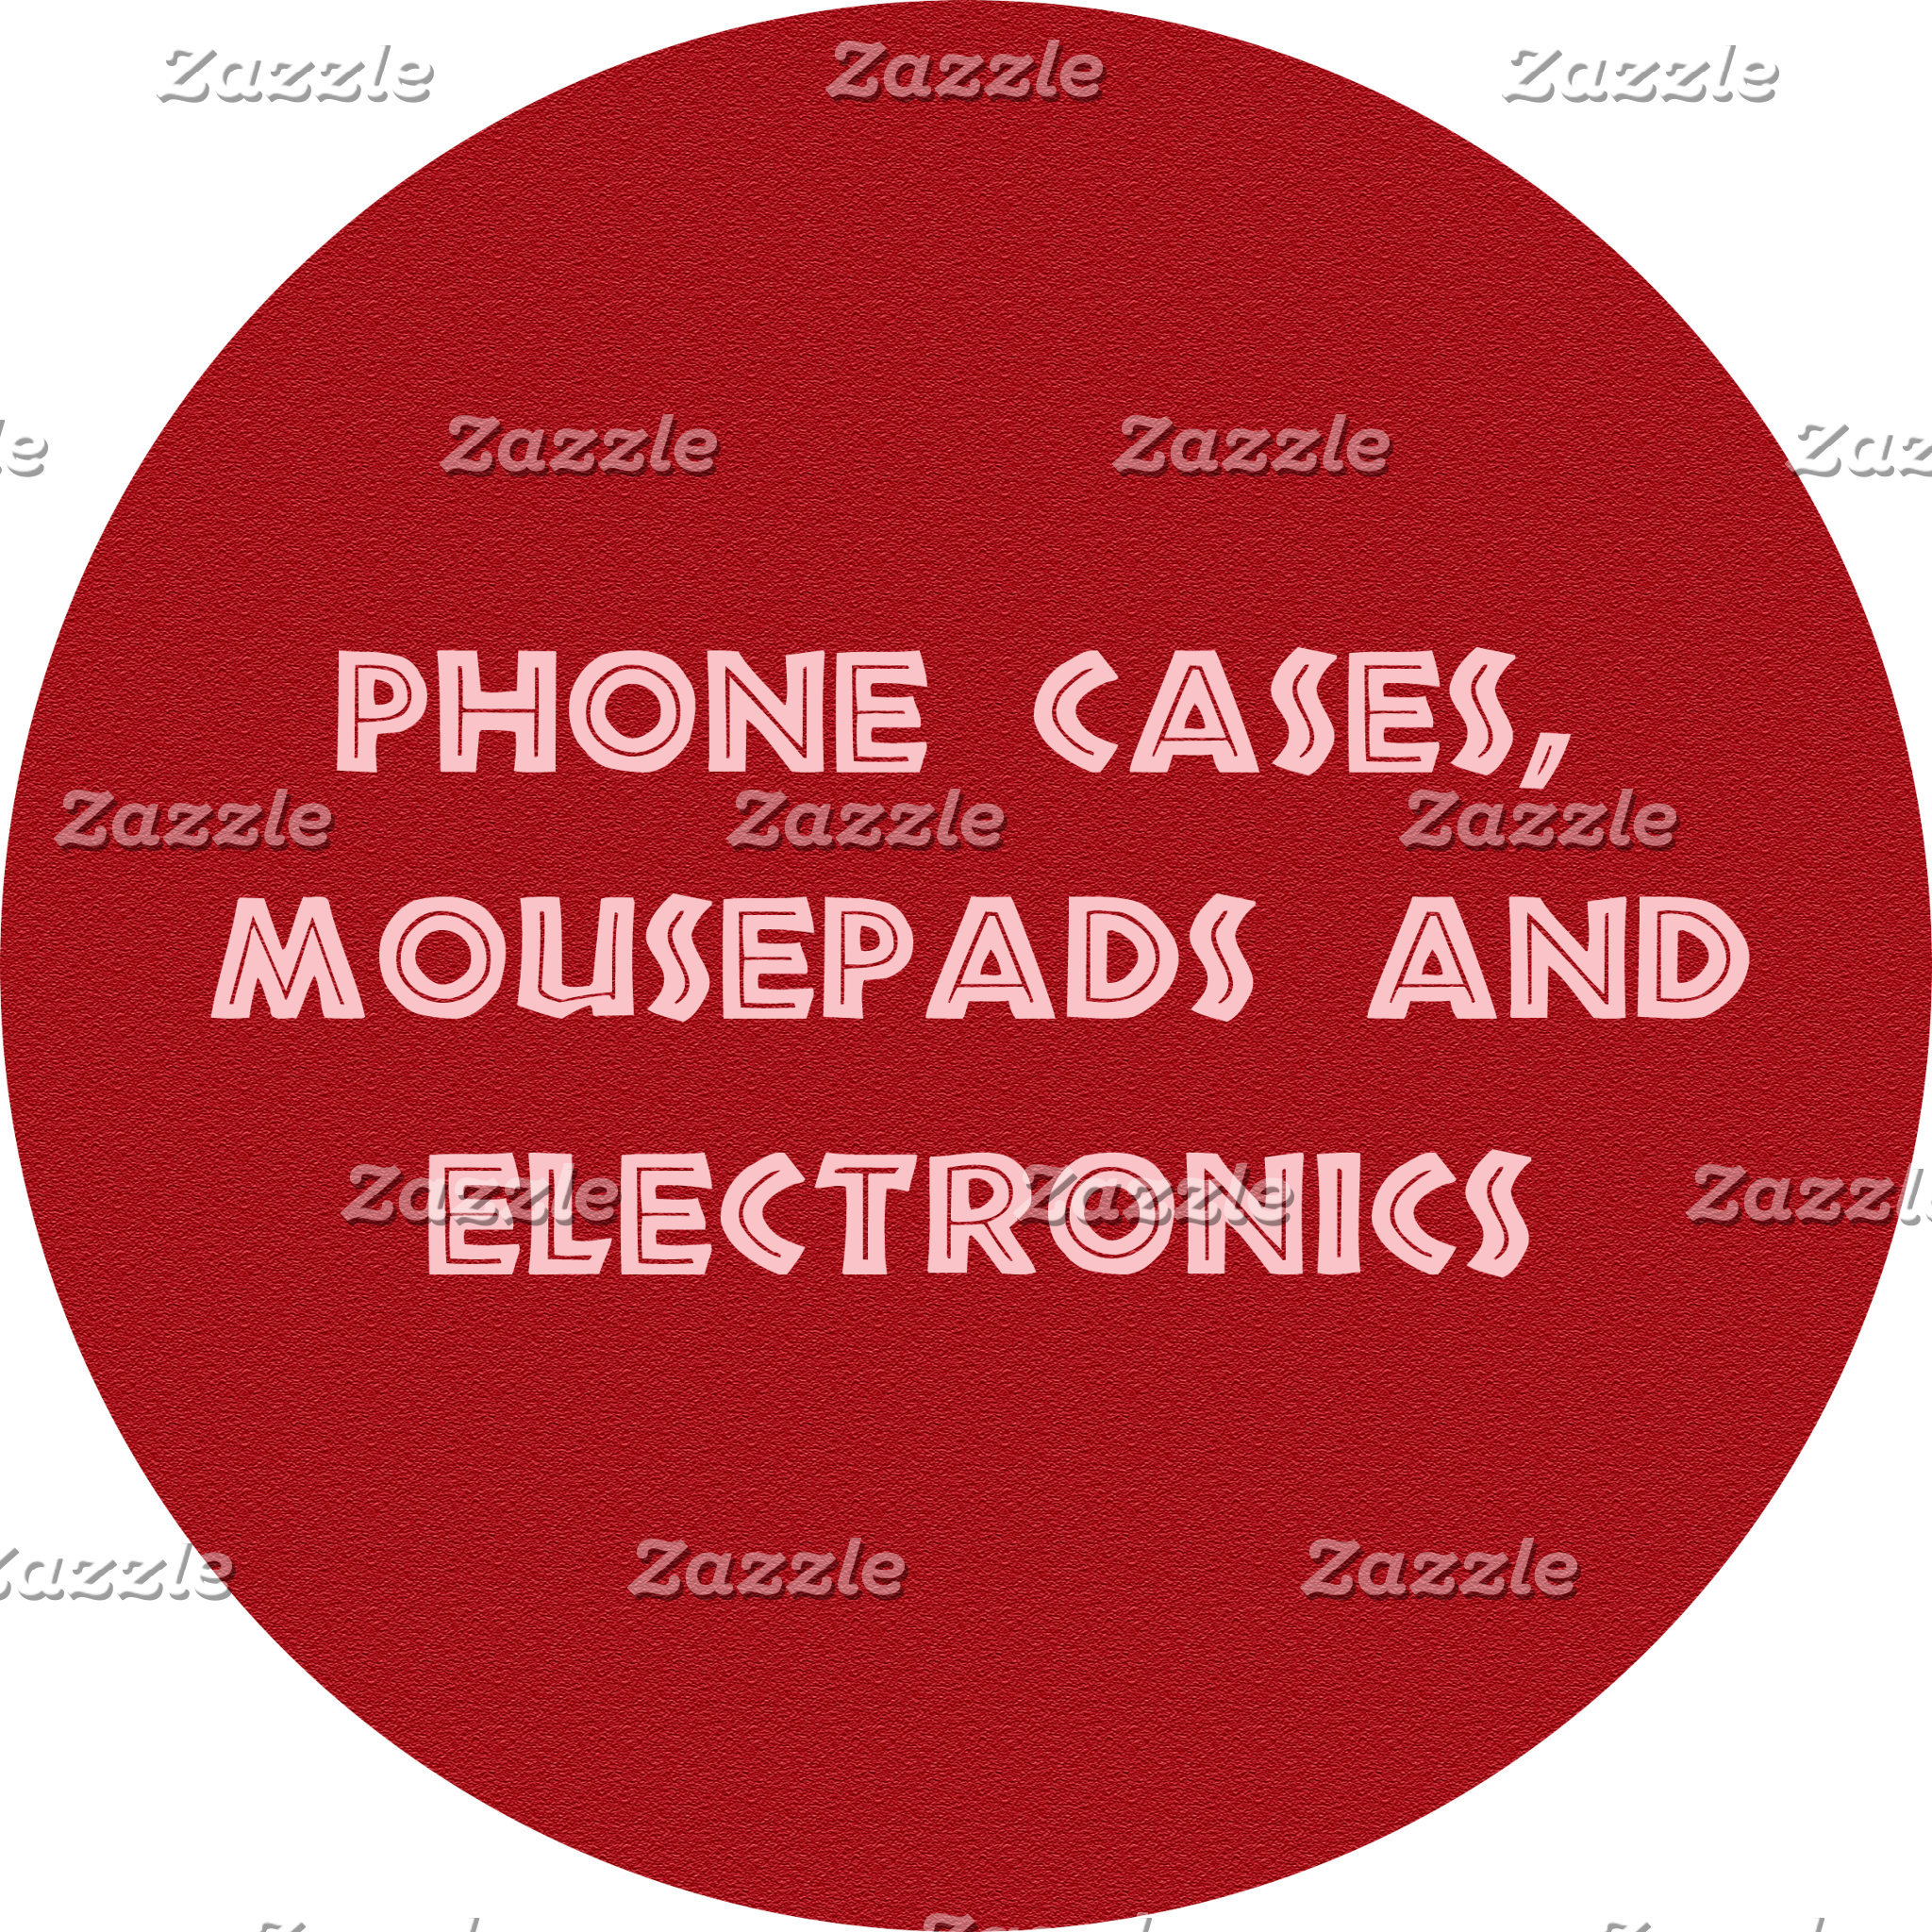 Phone cases, mousepads and electronics